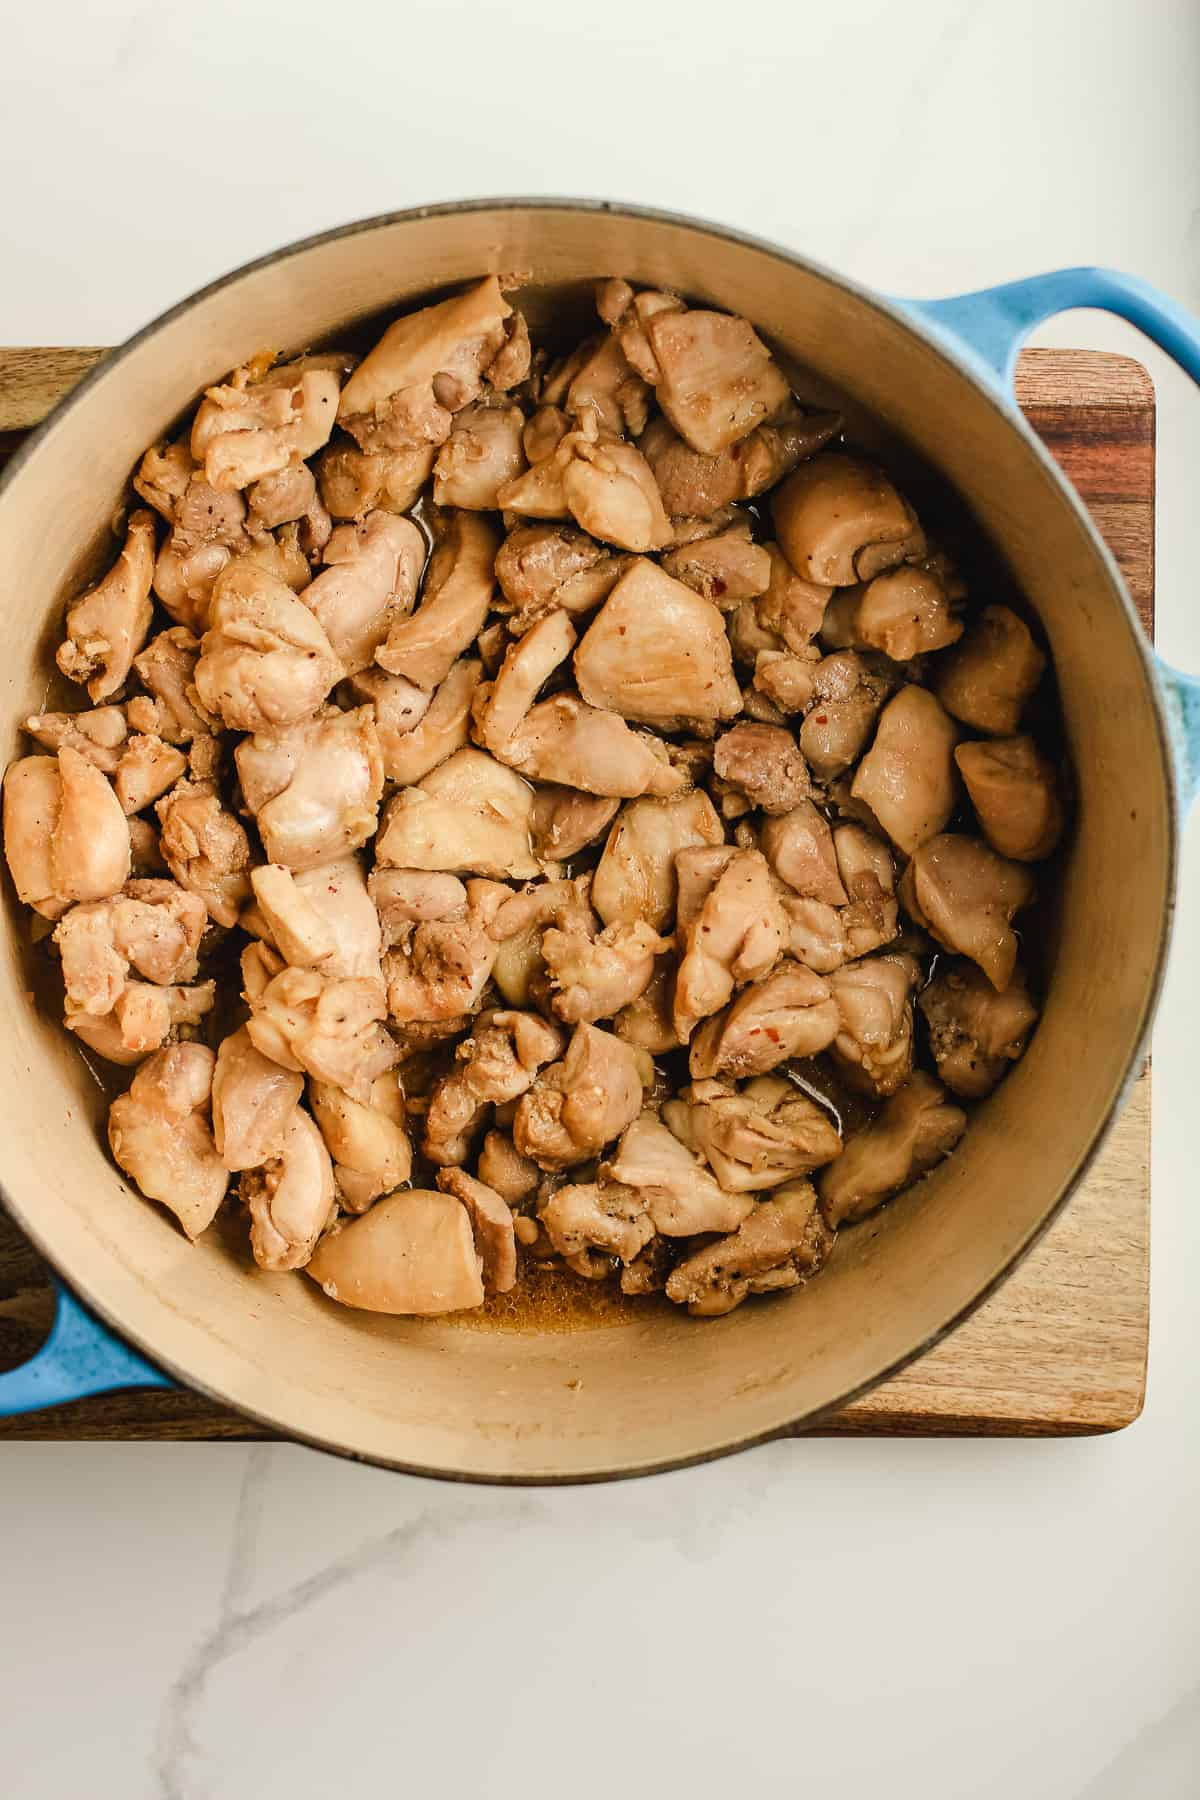 A stock pot of cooked chicken thighs in bite-sized pieces.